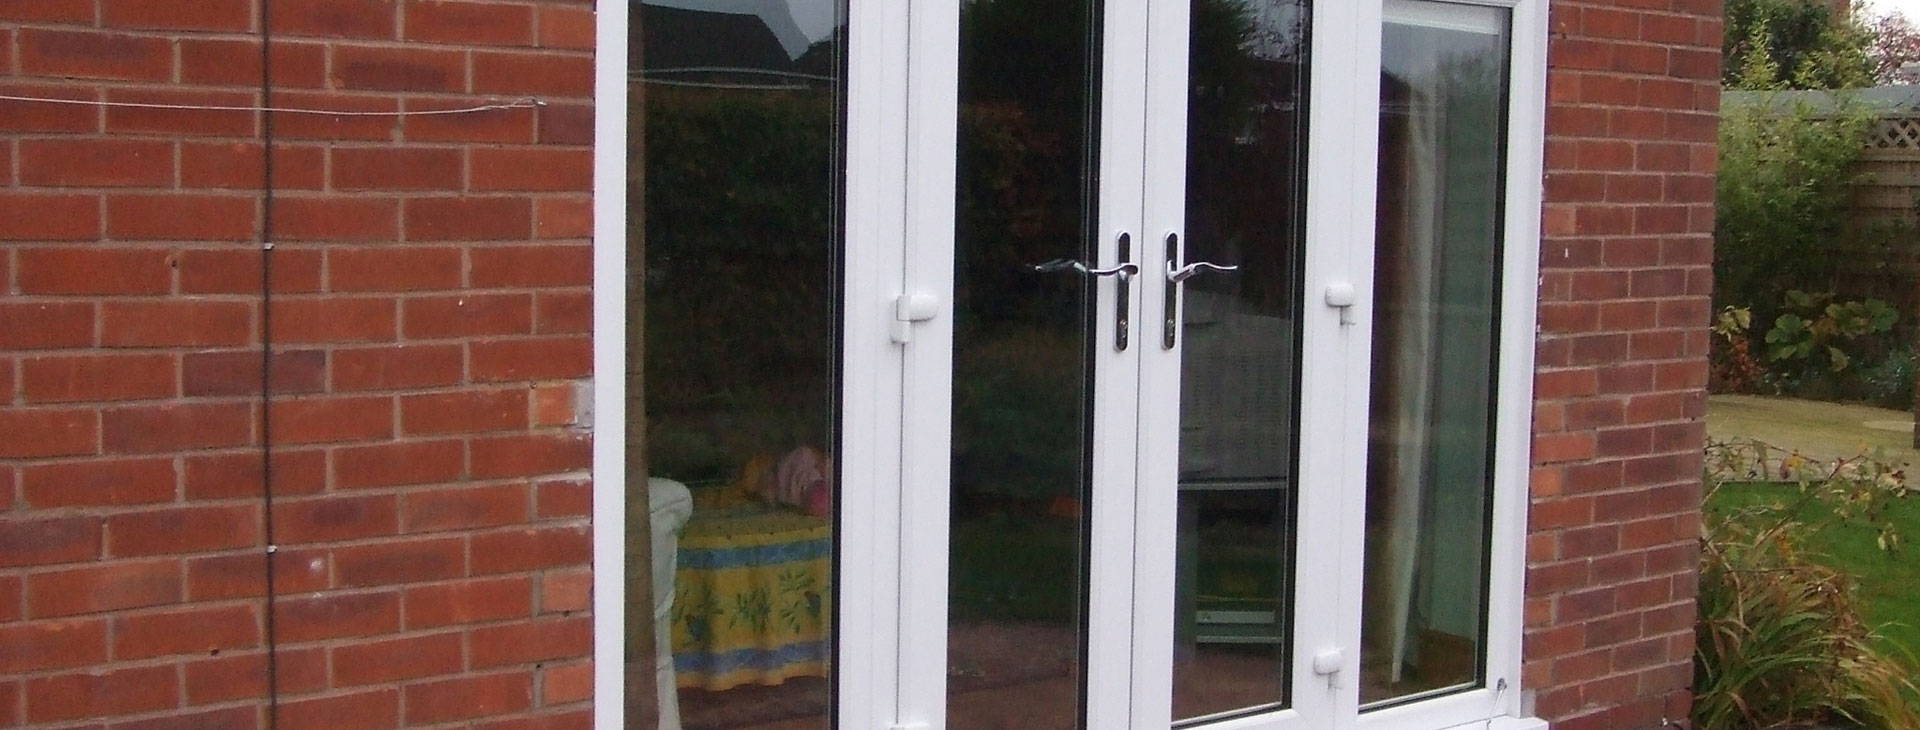 frenchdoors5-1920x730